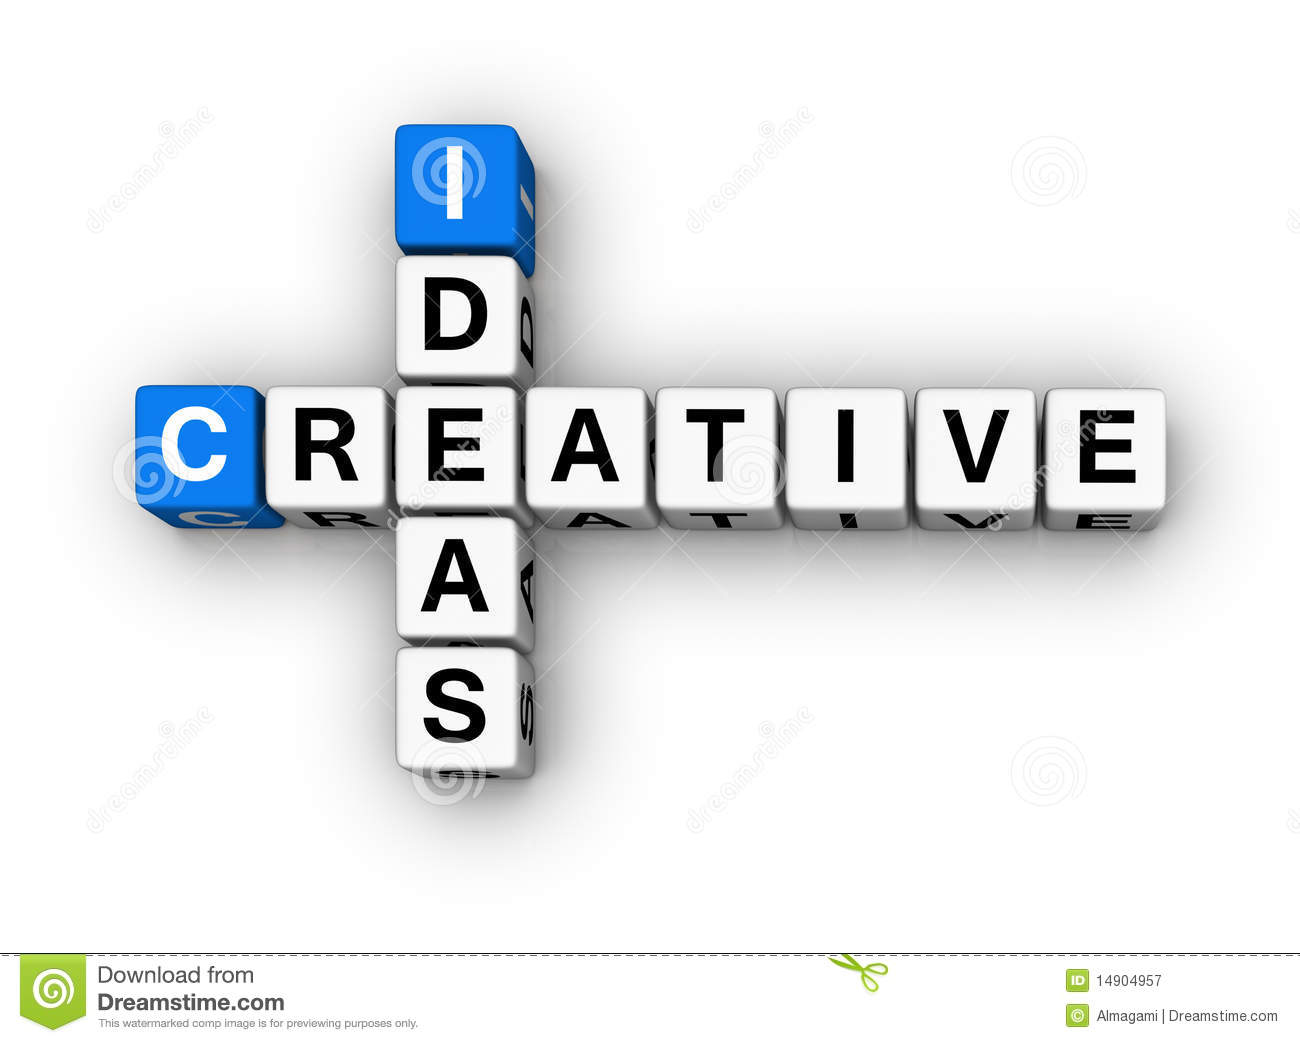 Creative Ideas Royalty Free Stock Photography - Image: 14904957